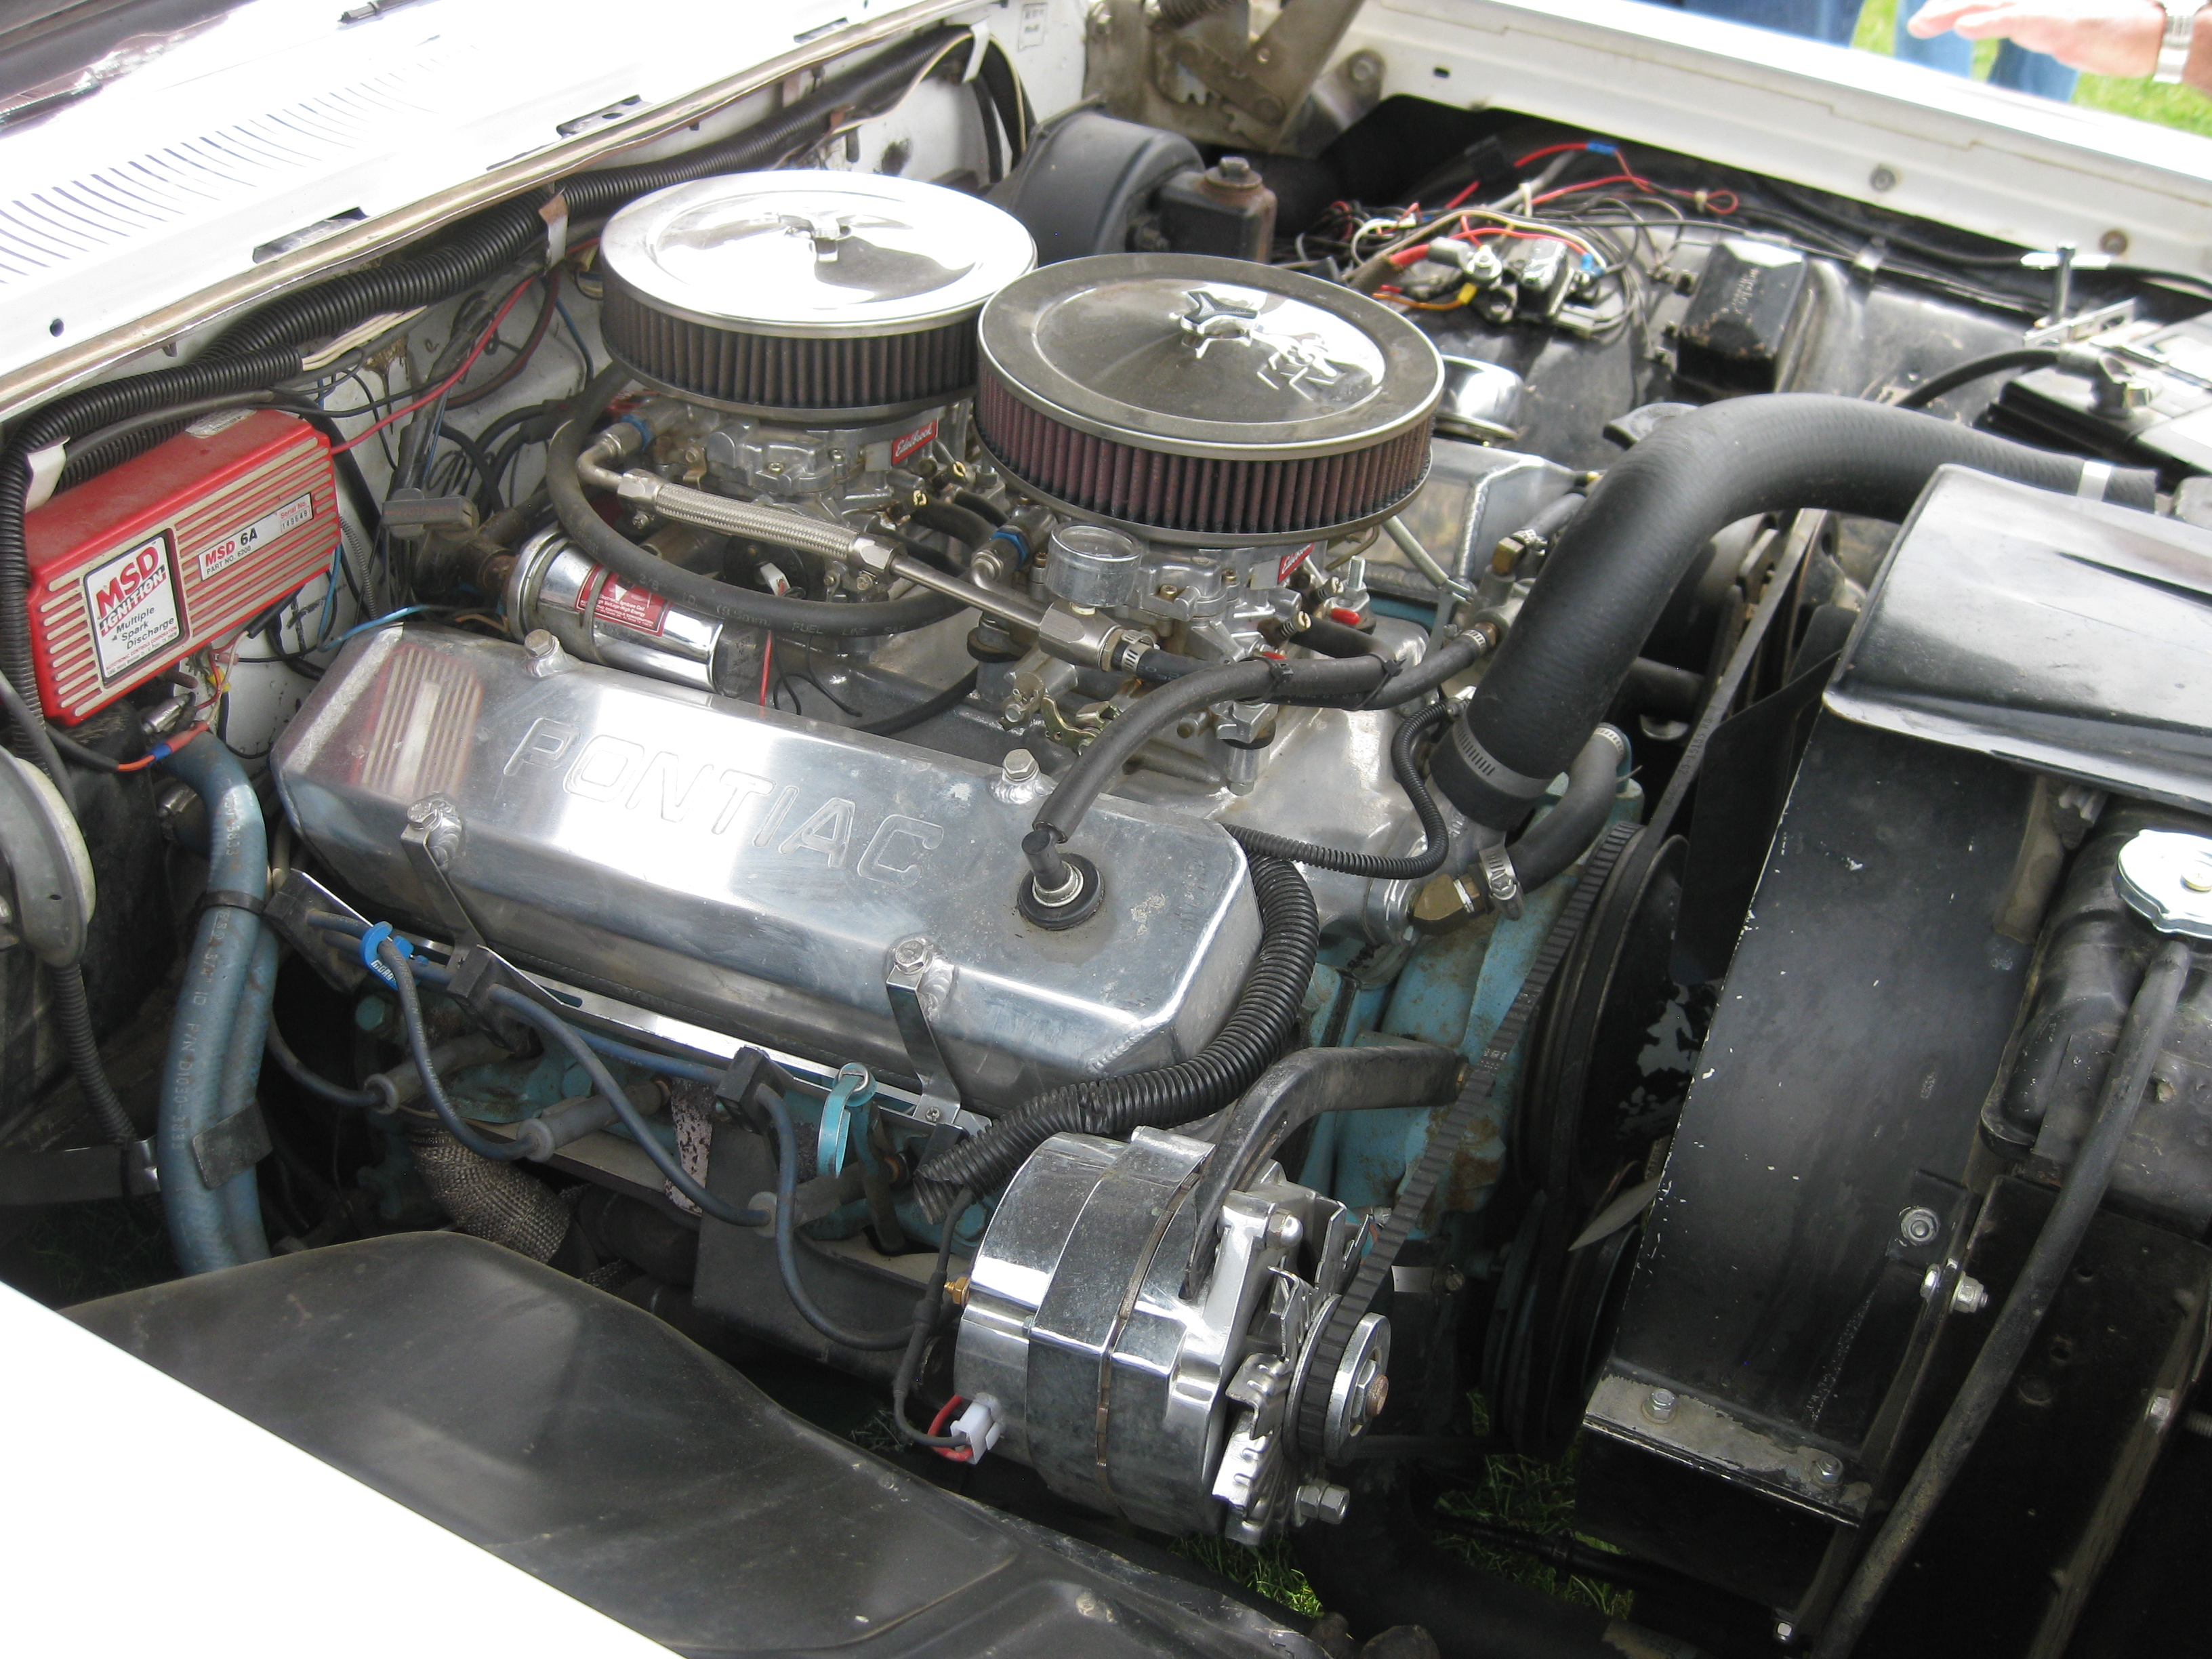 Long Branch D Port Factory Headers 1960 1970 Big Car Catalina Bonneville Plus Many Other further 1980 Lemans Wiring Diagram additionally Page 4 as well 189826 Az Authentic 64 Gto 4 Speed Tri Power Convertible besides Search Fe Tripower Intake Manifold For Sale. on file pontiac tripower